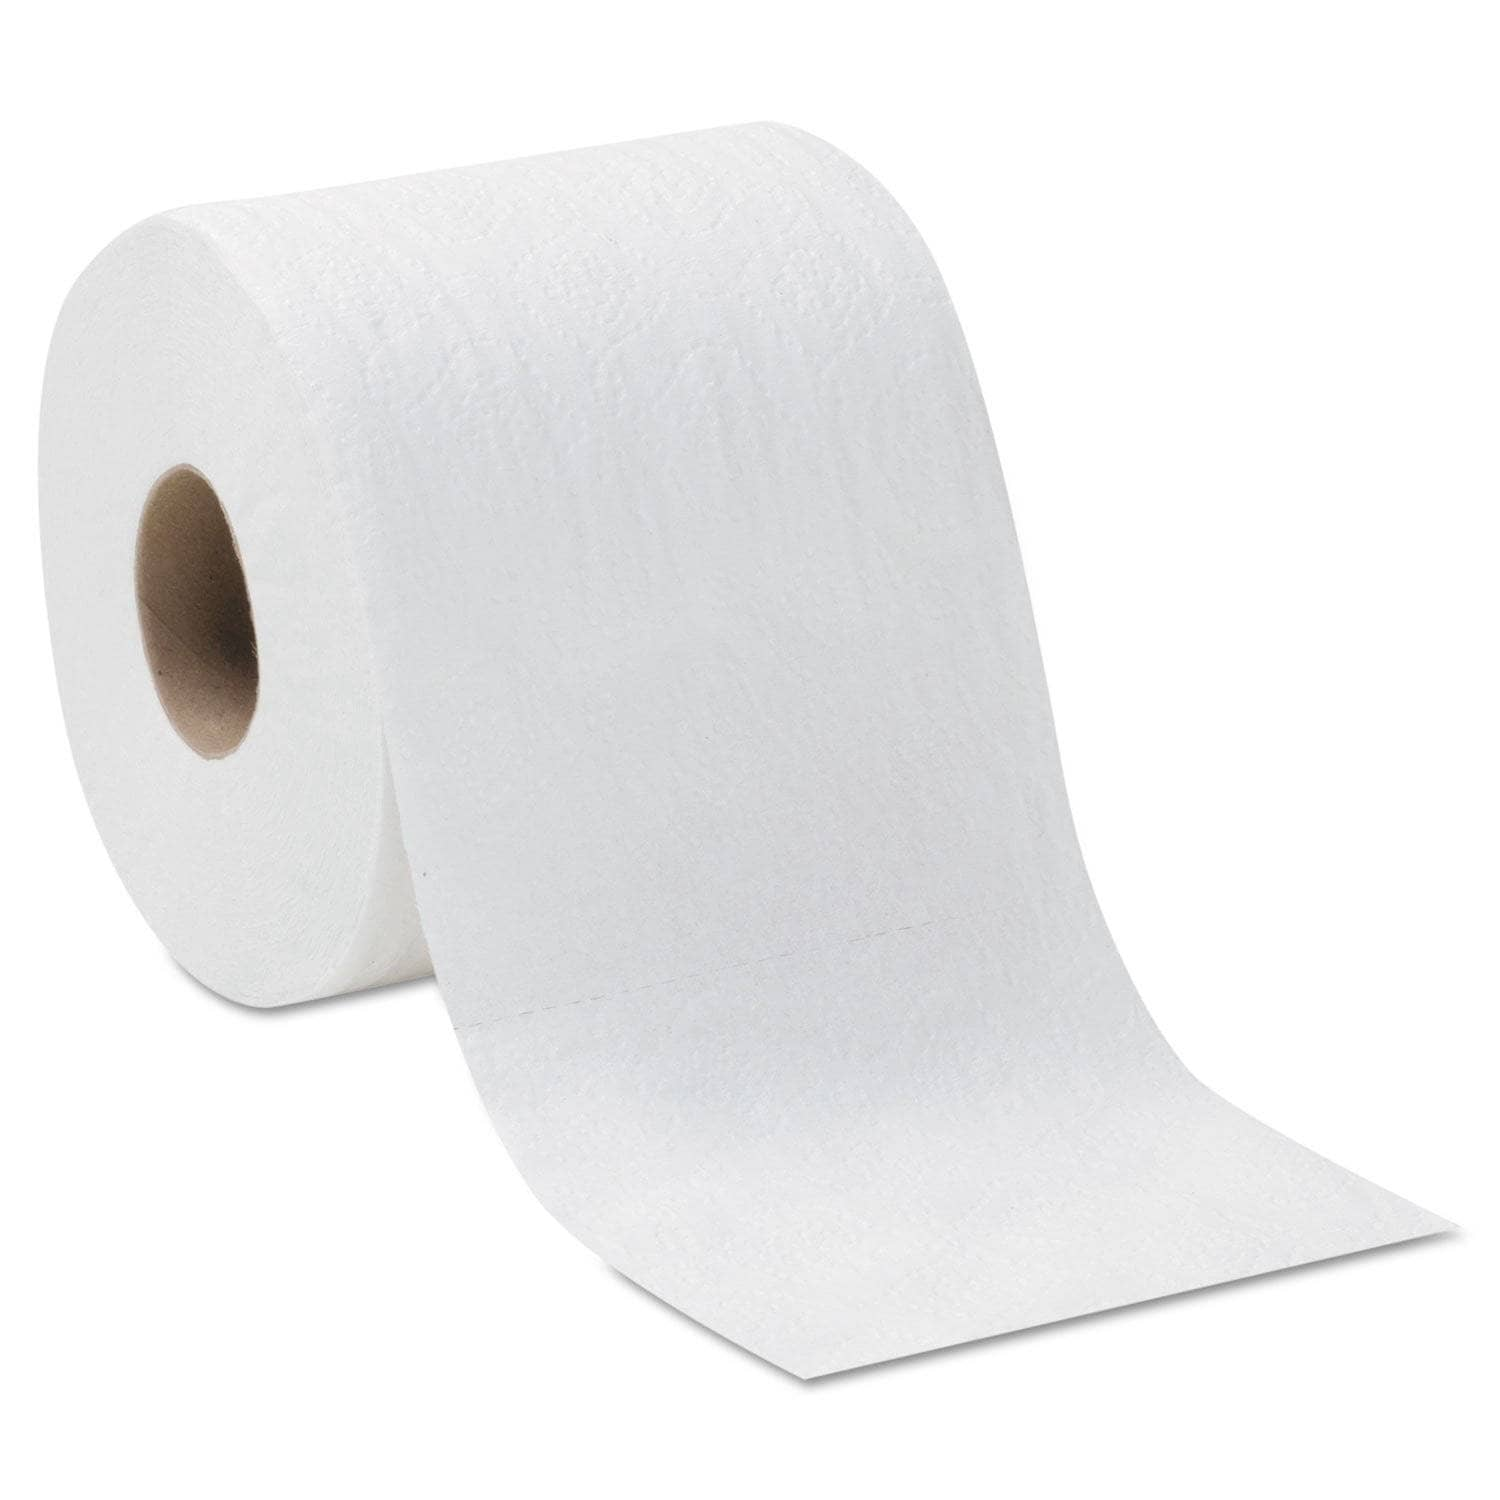 Georgia Pacific Embossed 2-Ply Bathroom Tissue, Septic Safe, White, 550 Sheet/Roll, 80 Rolls/Carton - GPC1828001 - TotalRestroom.com